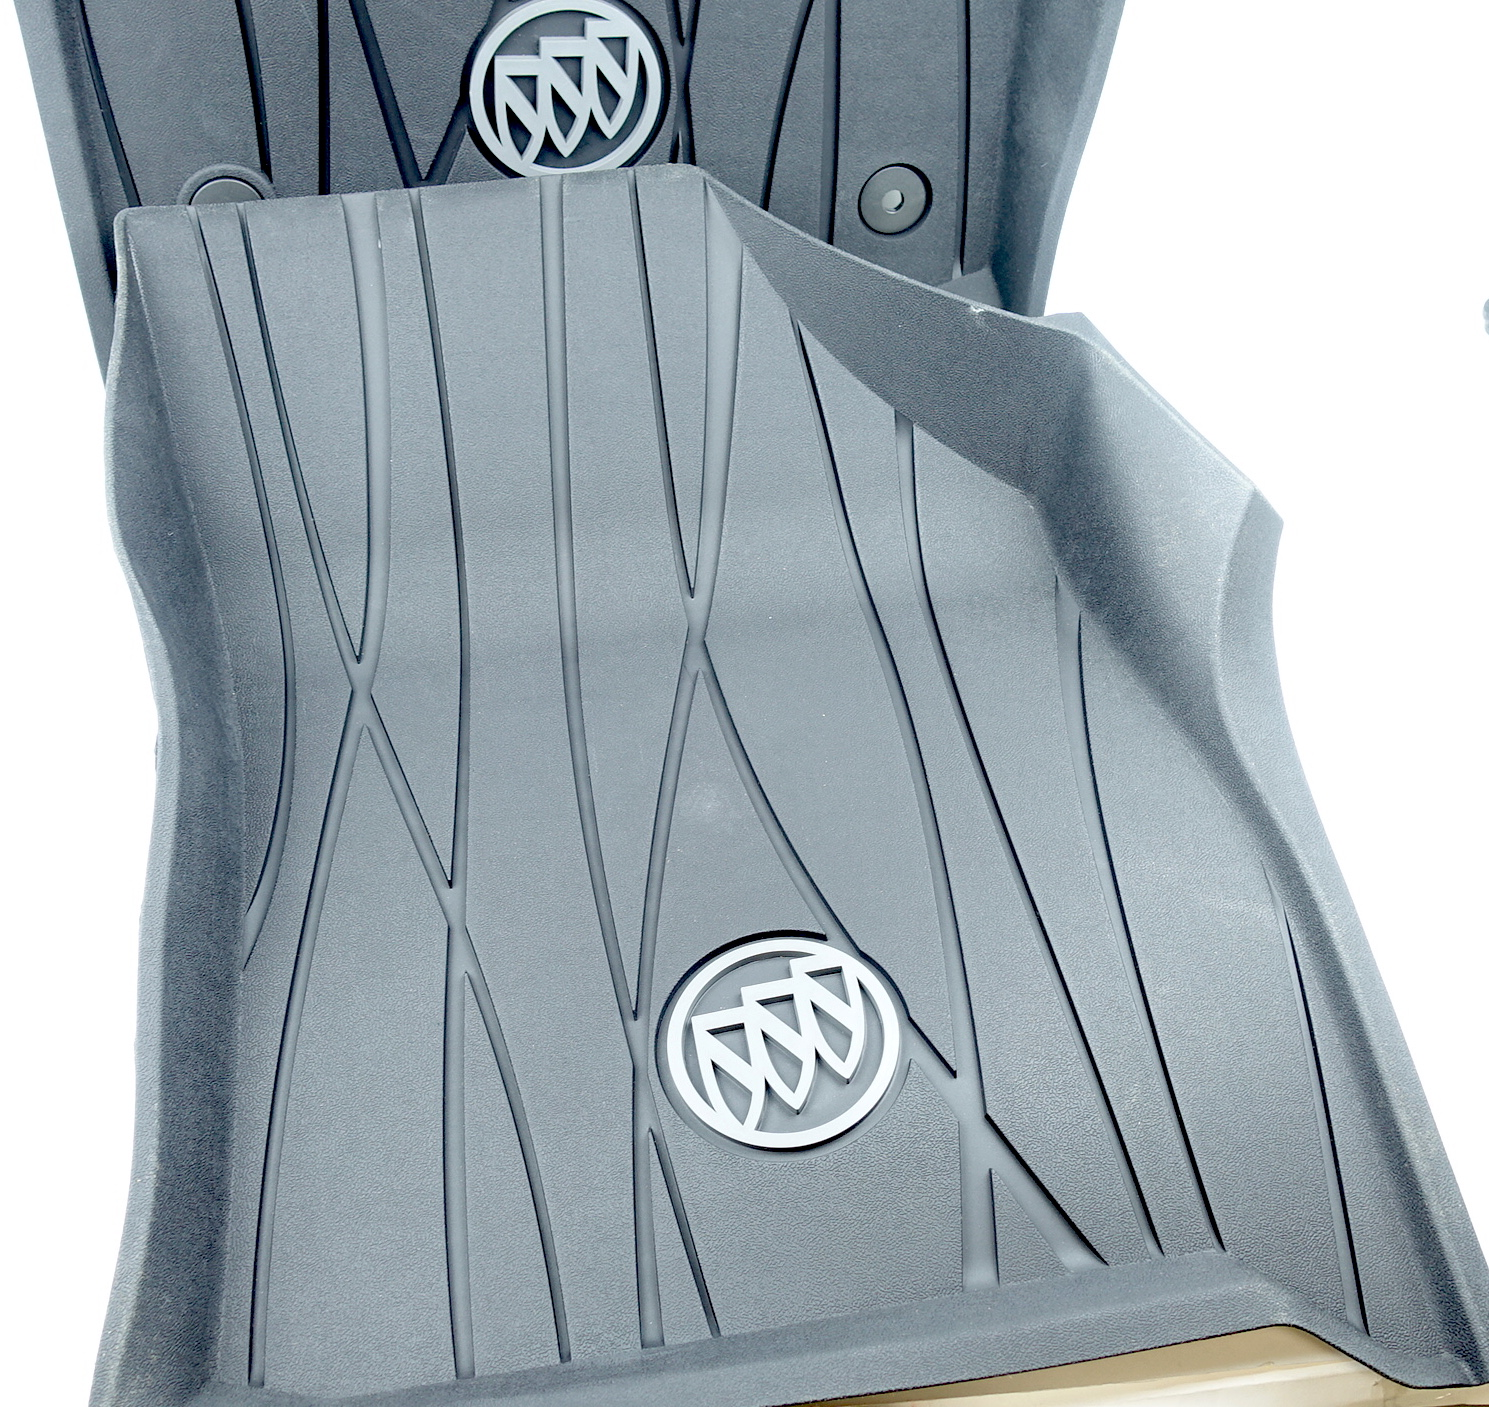 New OEM 84359483 GM 18-21 Buick Enclave Full Coverage Front Black Floor Liners - image 3